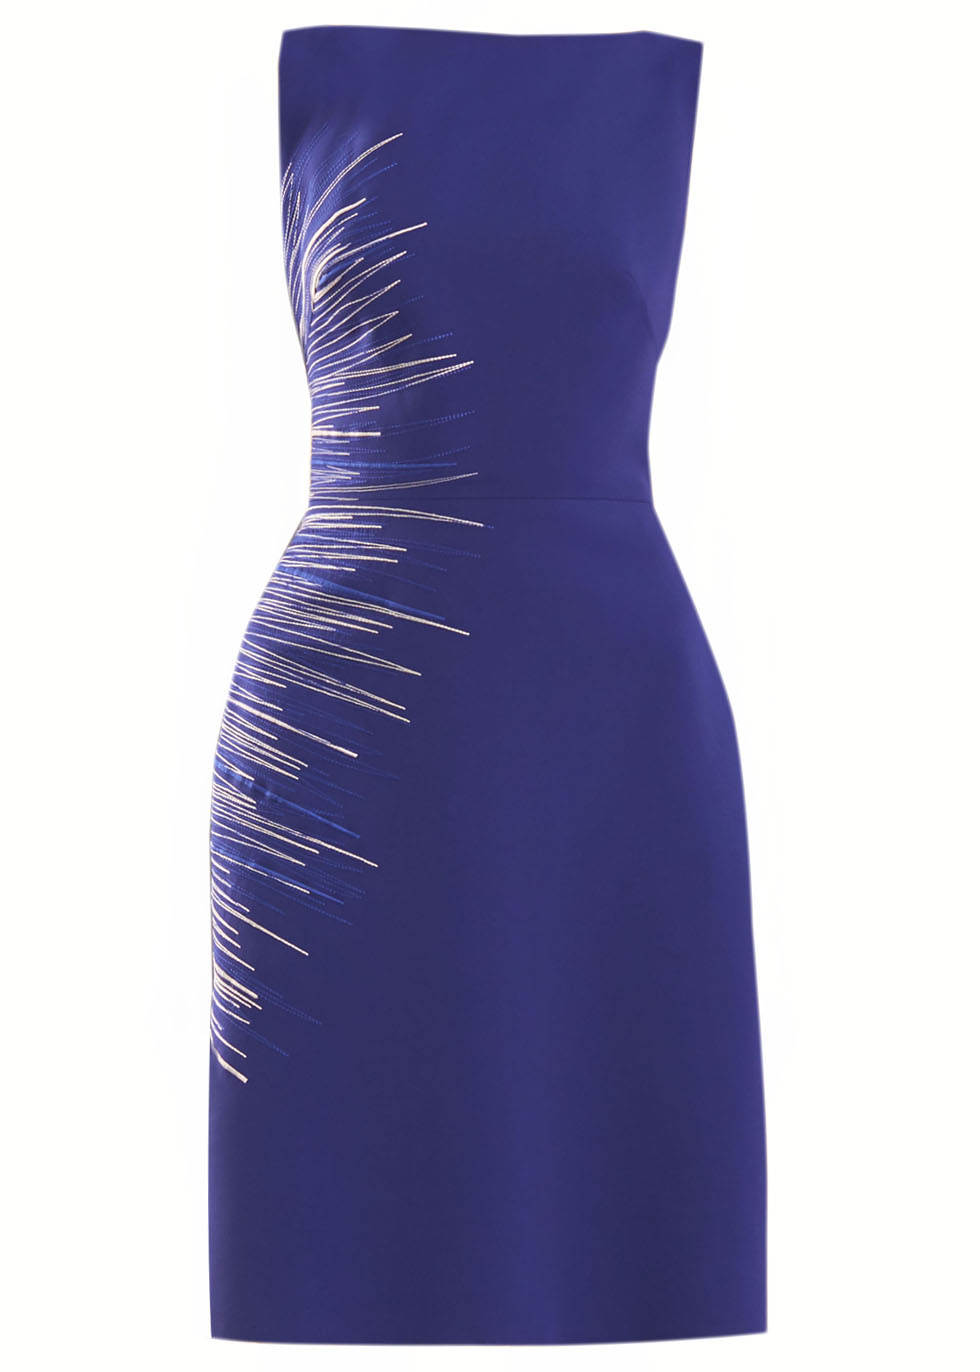 Boat neck embroidery dress-image.jpg